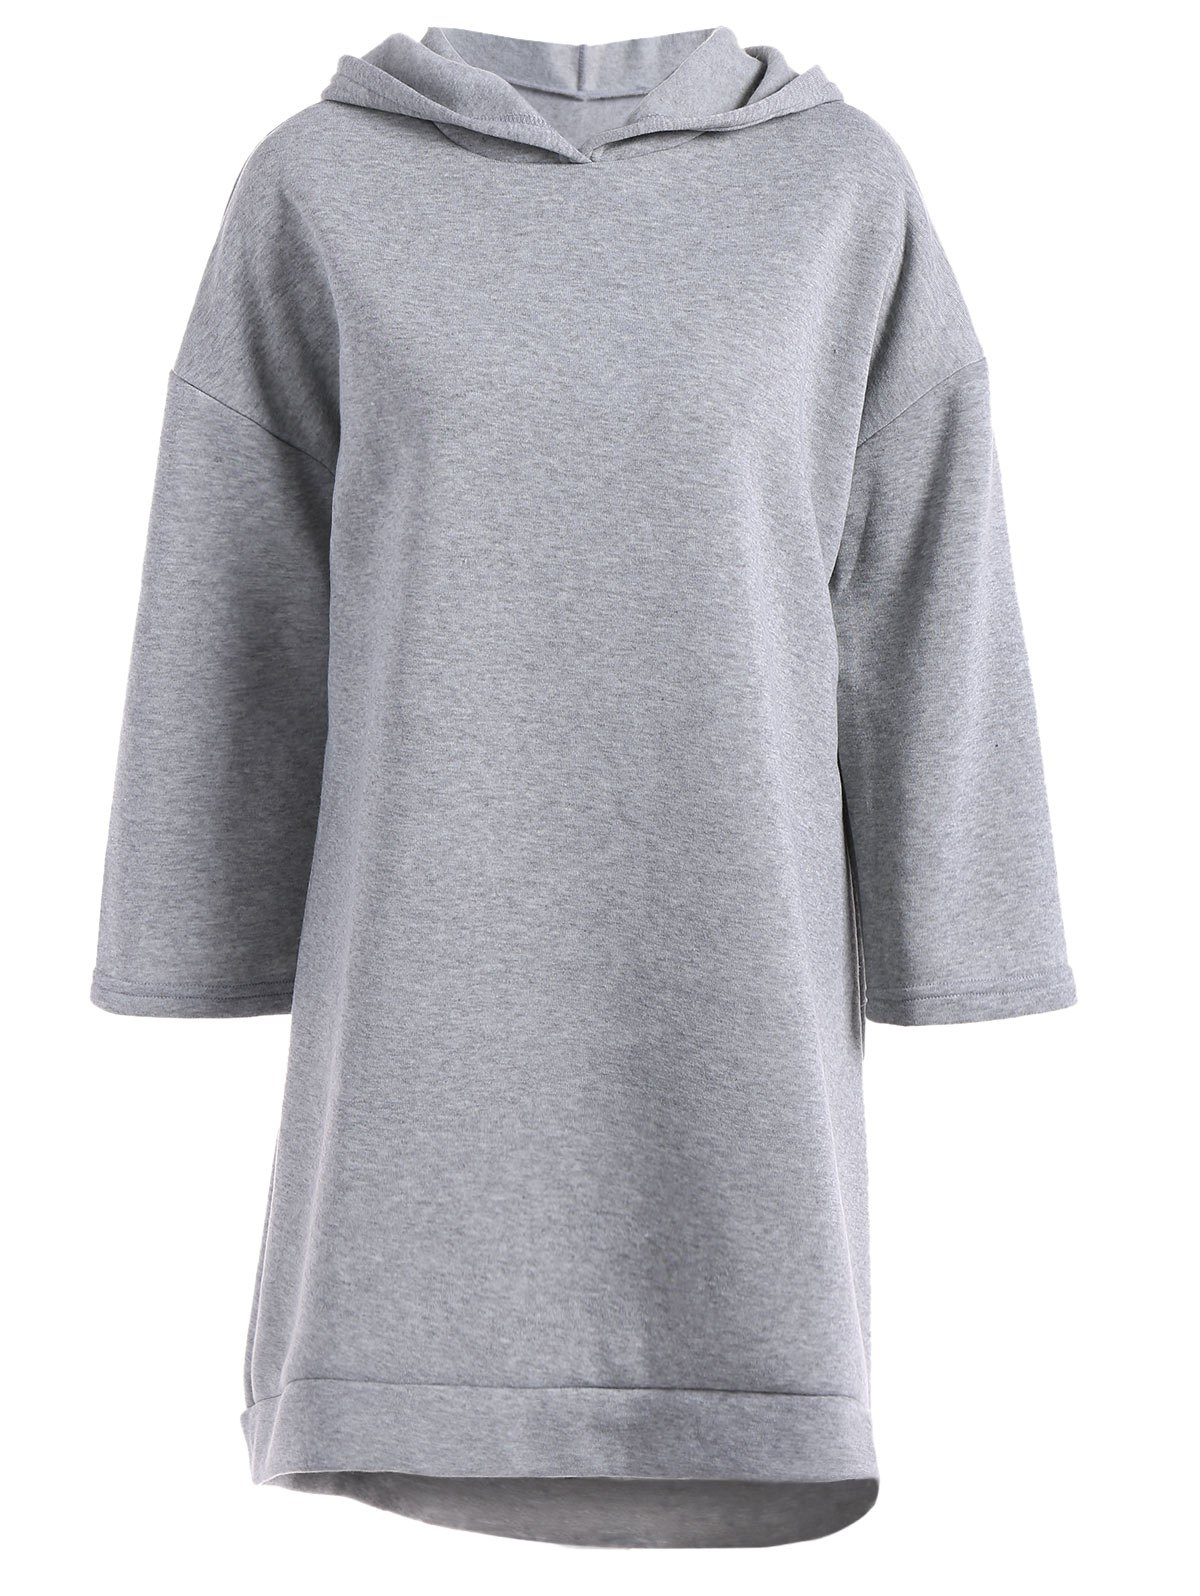 Loose Fitting High Low Fleece Hooded Dress - GRAY S